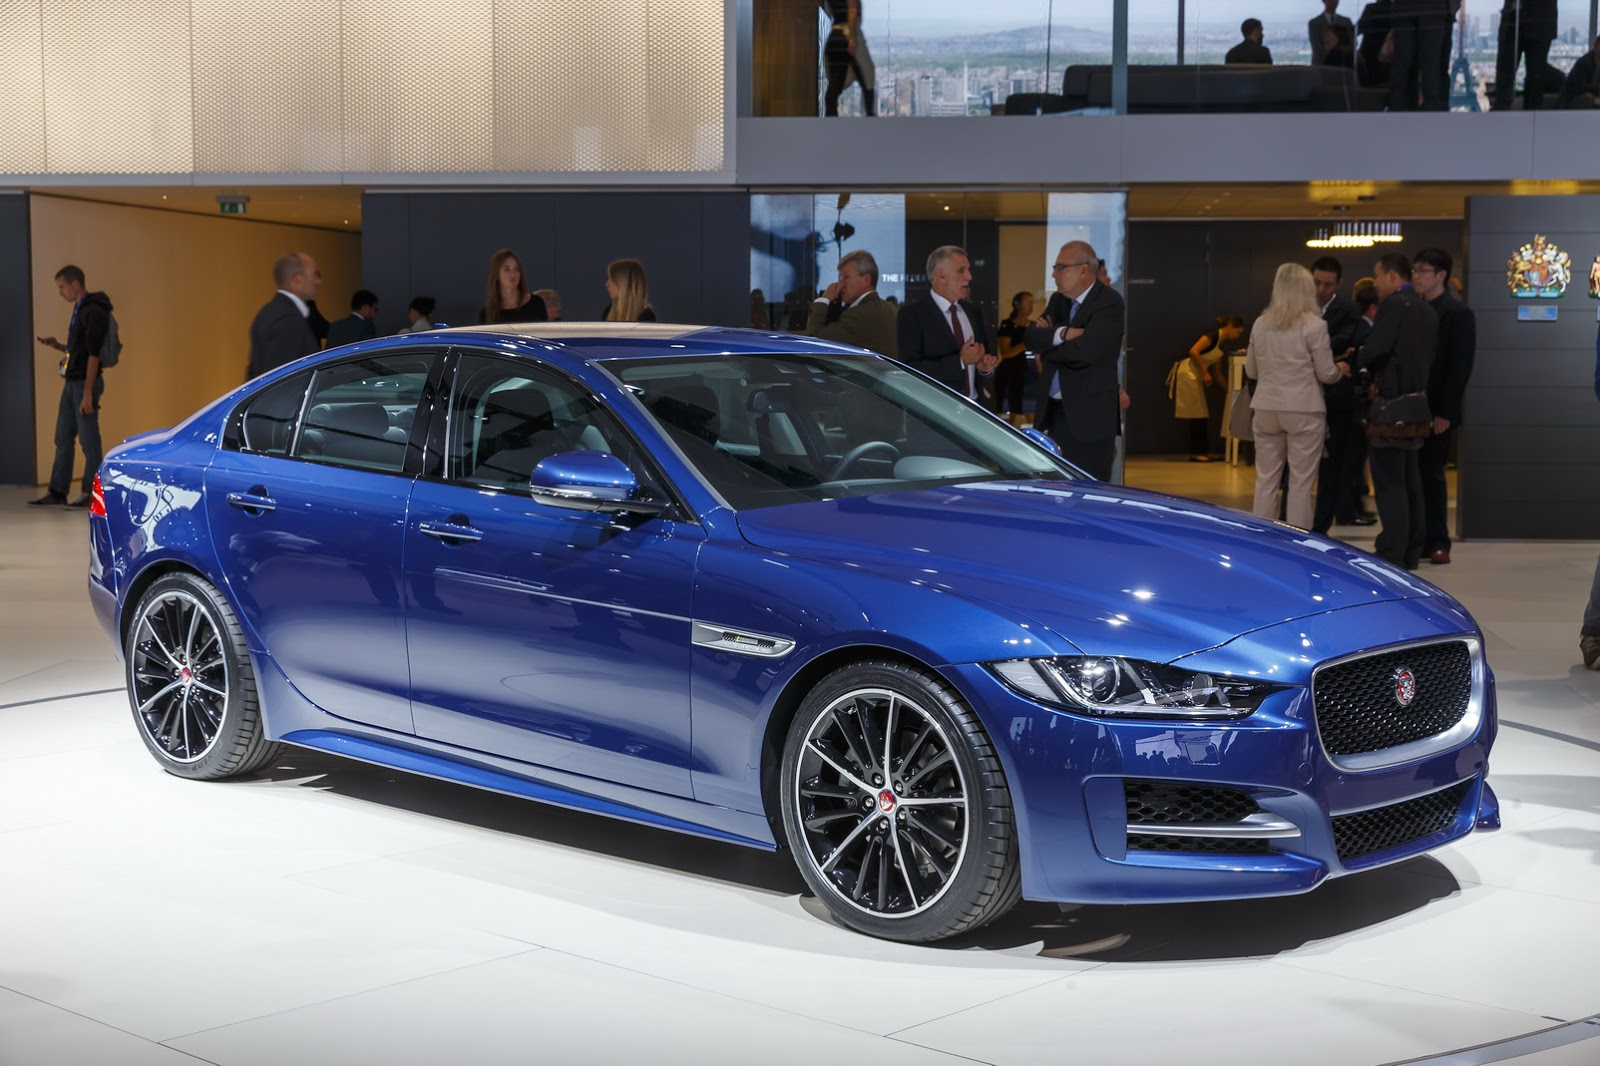 new jaguar xe the sports saloon redefined at a glance the new jaguar